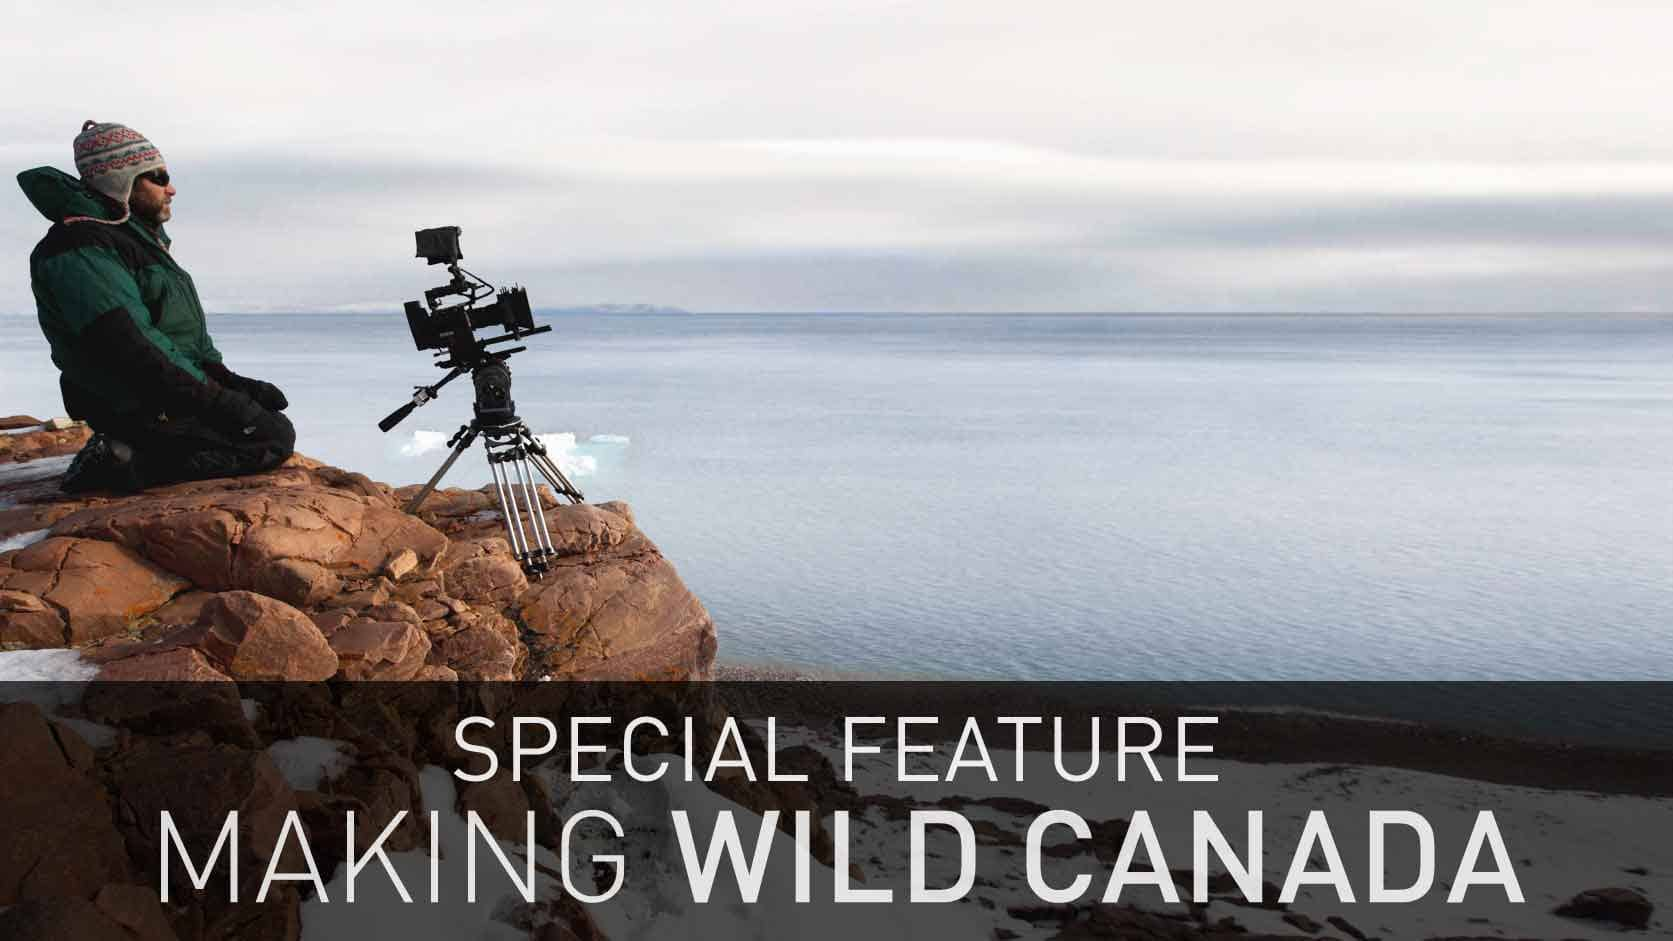 Special Feature: Making Wild Canada